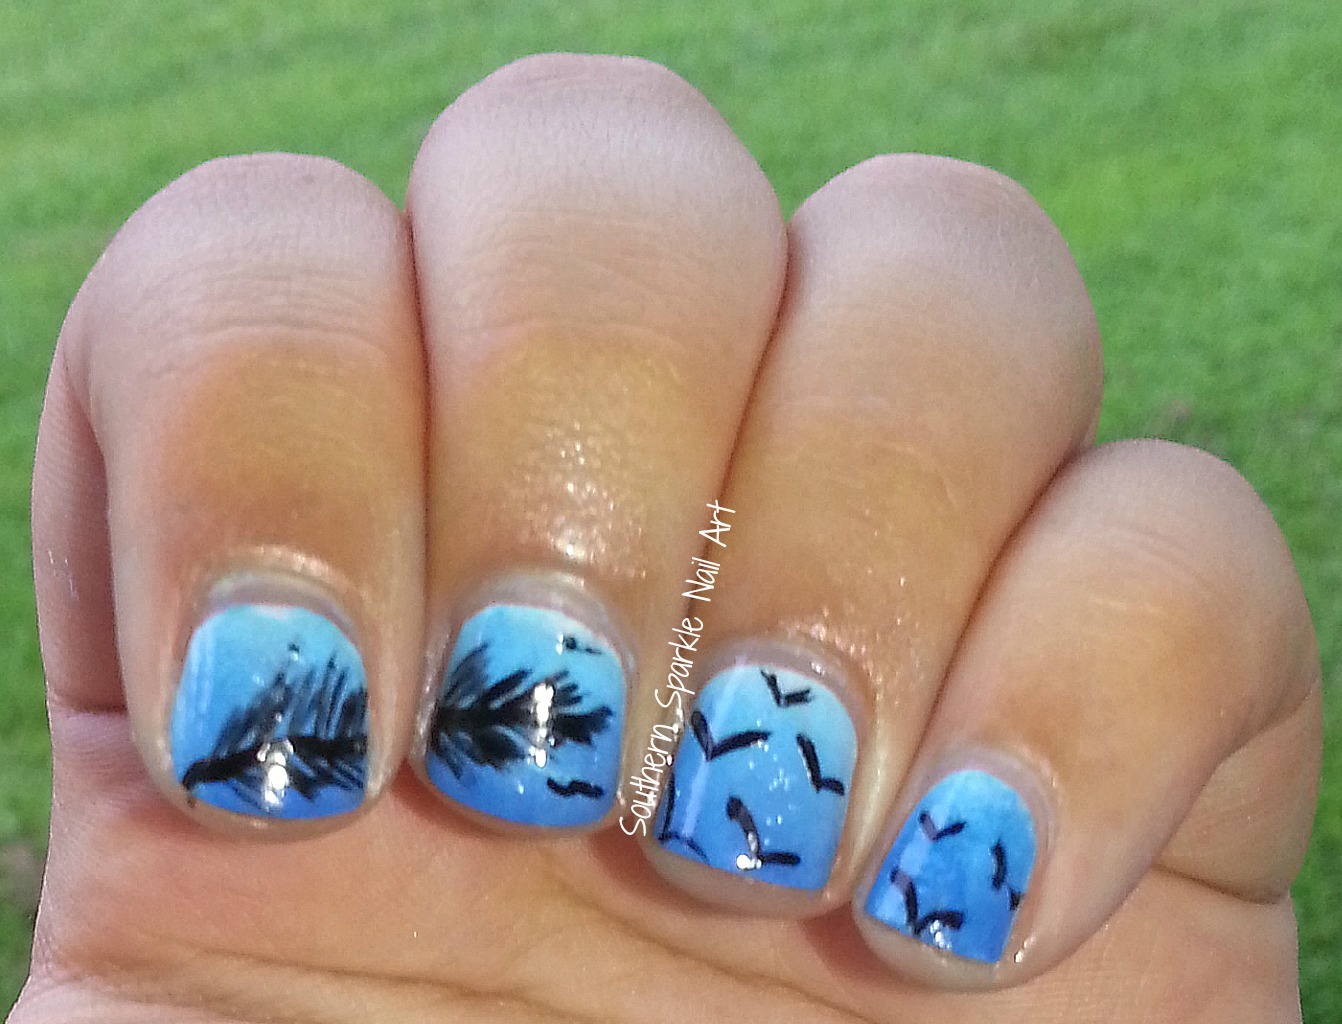 Southern sparkle nail art july 2014 twin nails birds feathers prinsesfo Choice Image